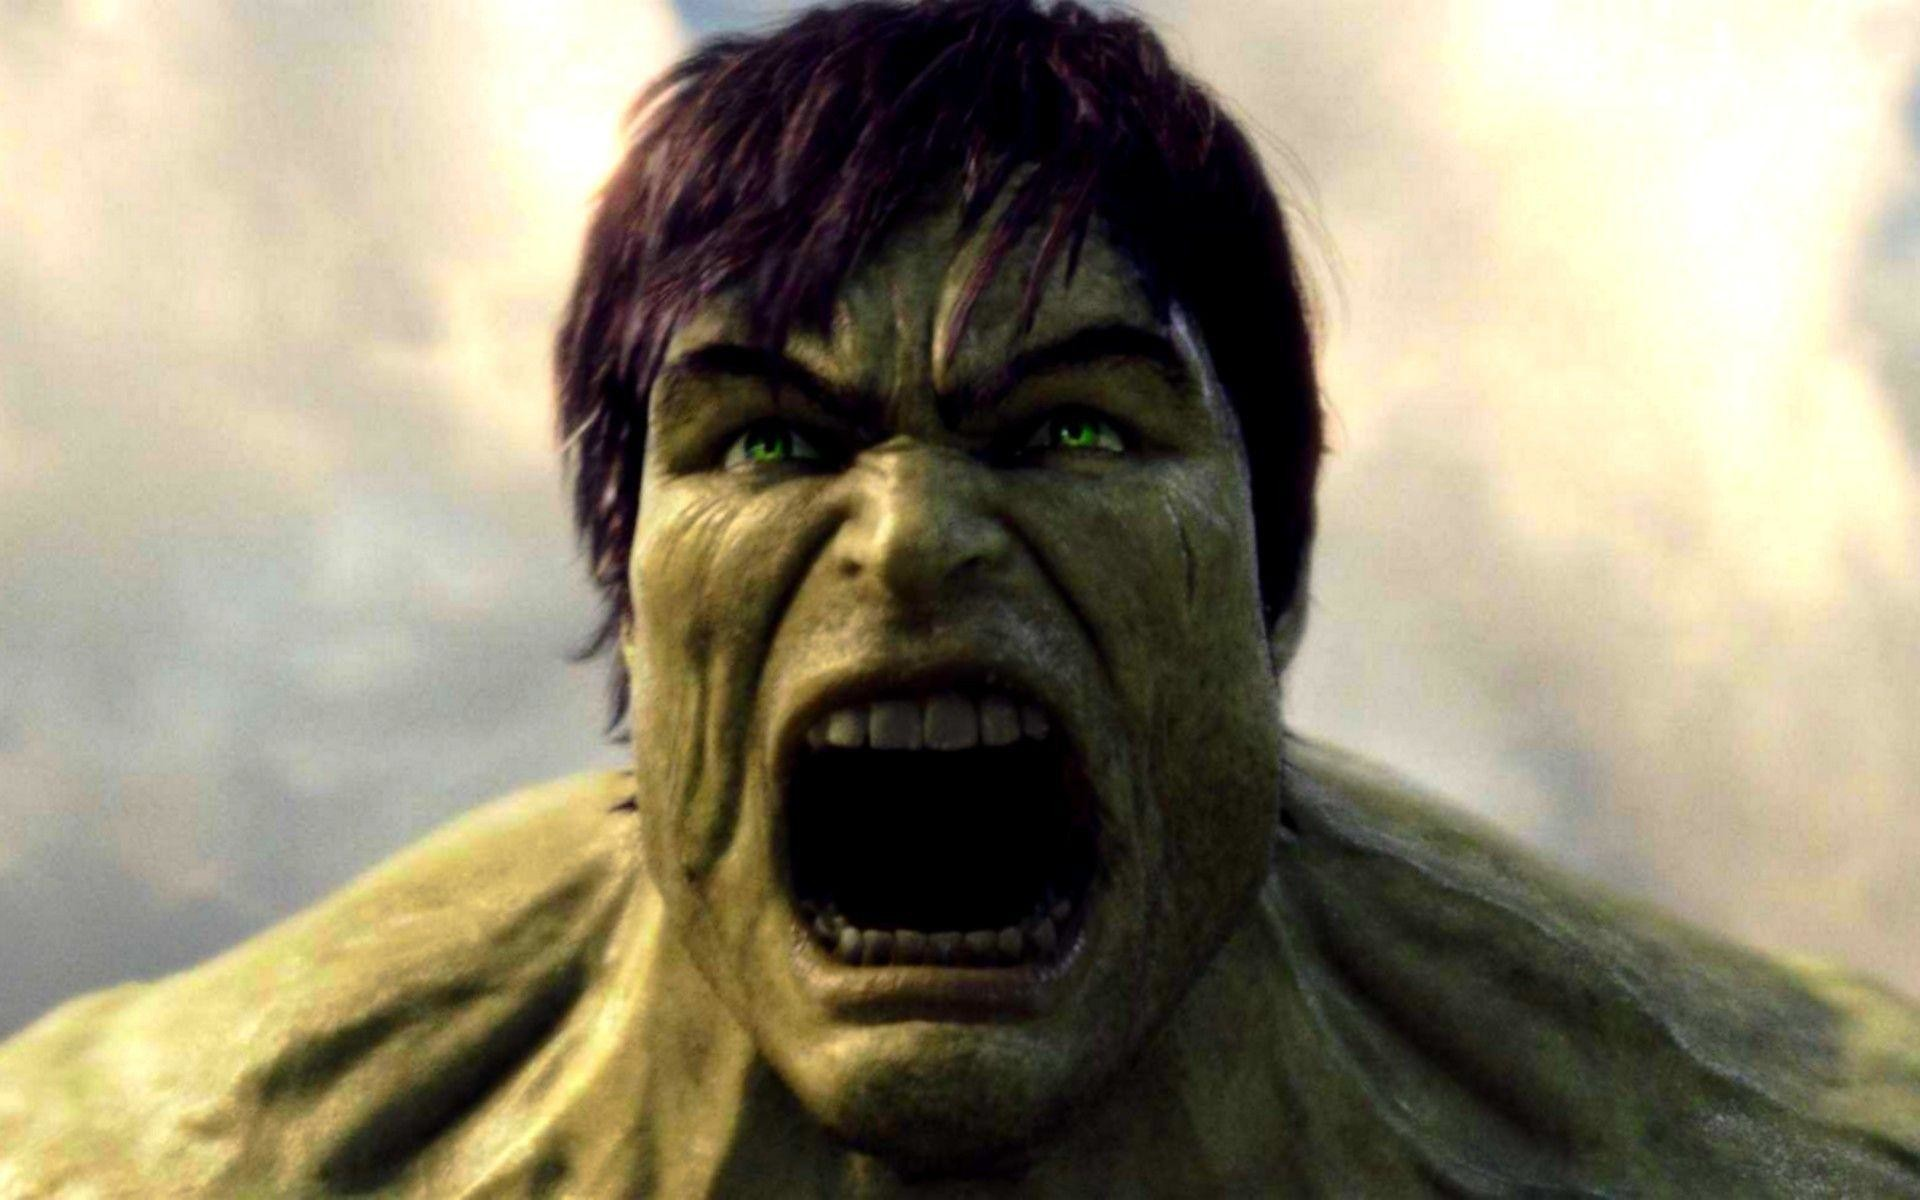 21 The Incredible Hulk Hd Wallpapers Backgrounds Wallpaper - Incredible Hulk Roar , HD Wallpaper & Backgrounds